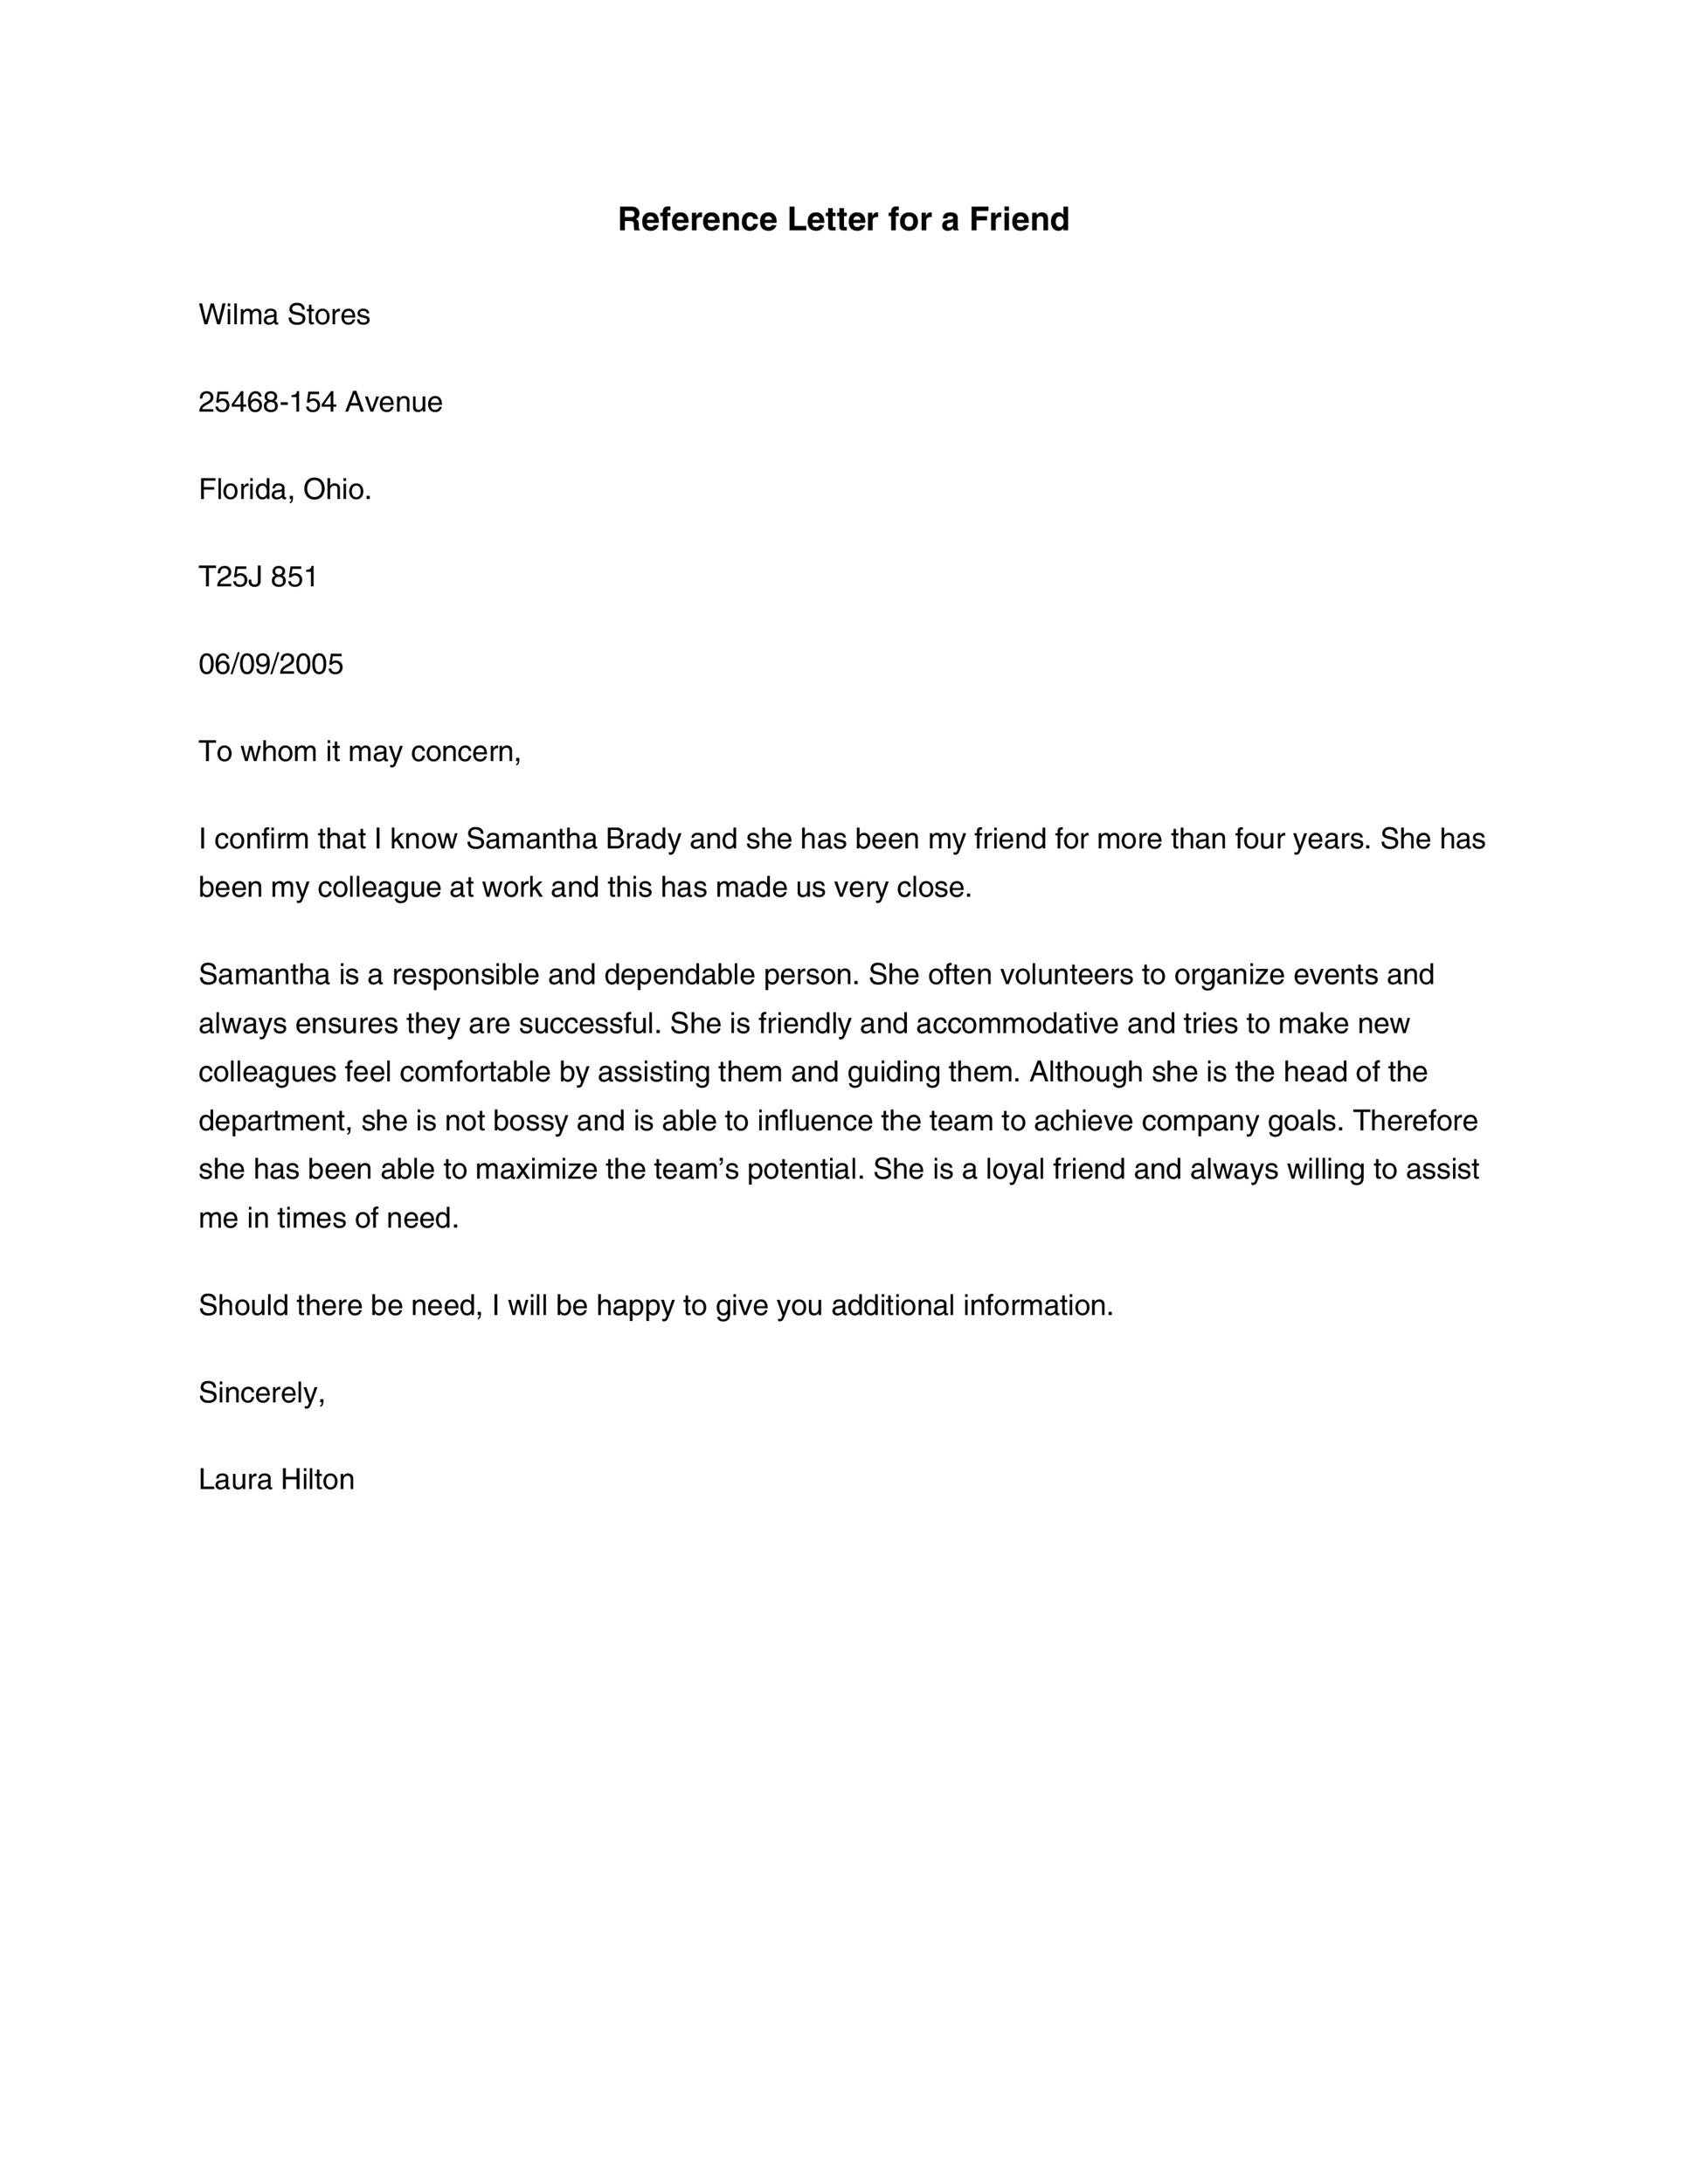 40+ Awesome Personal / Character Reference Letter Templates FREE - how to format a reference letter